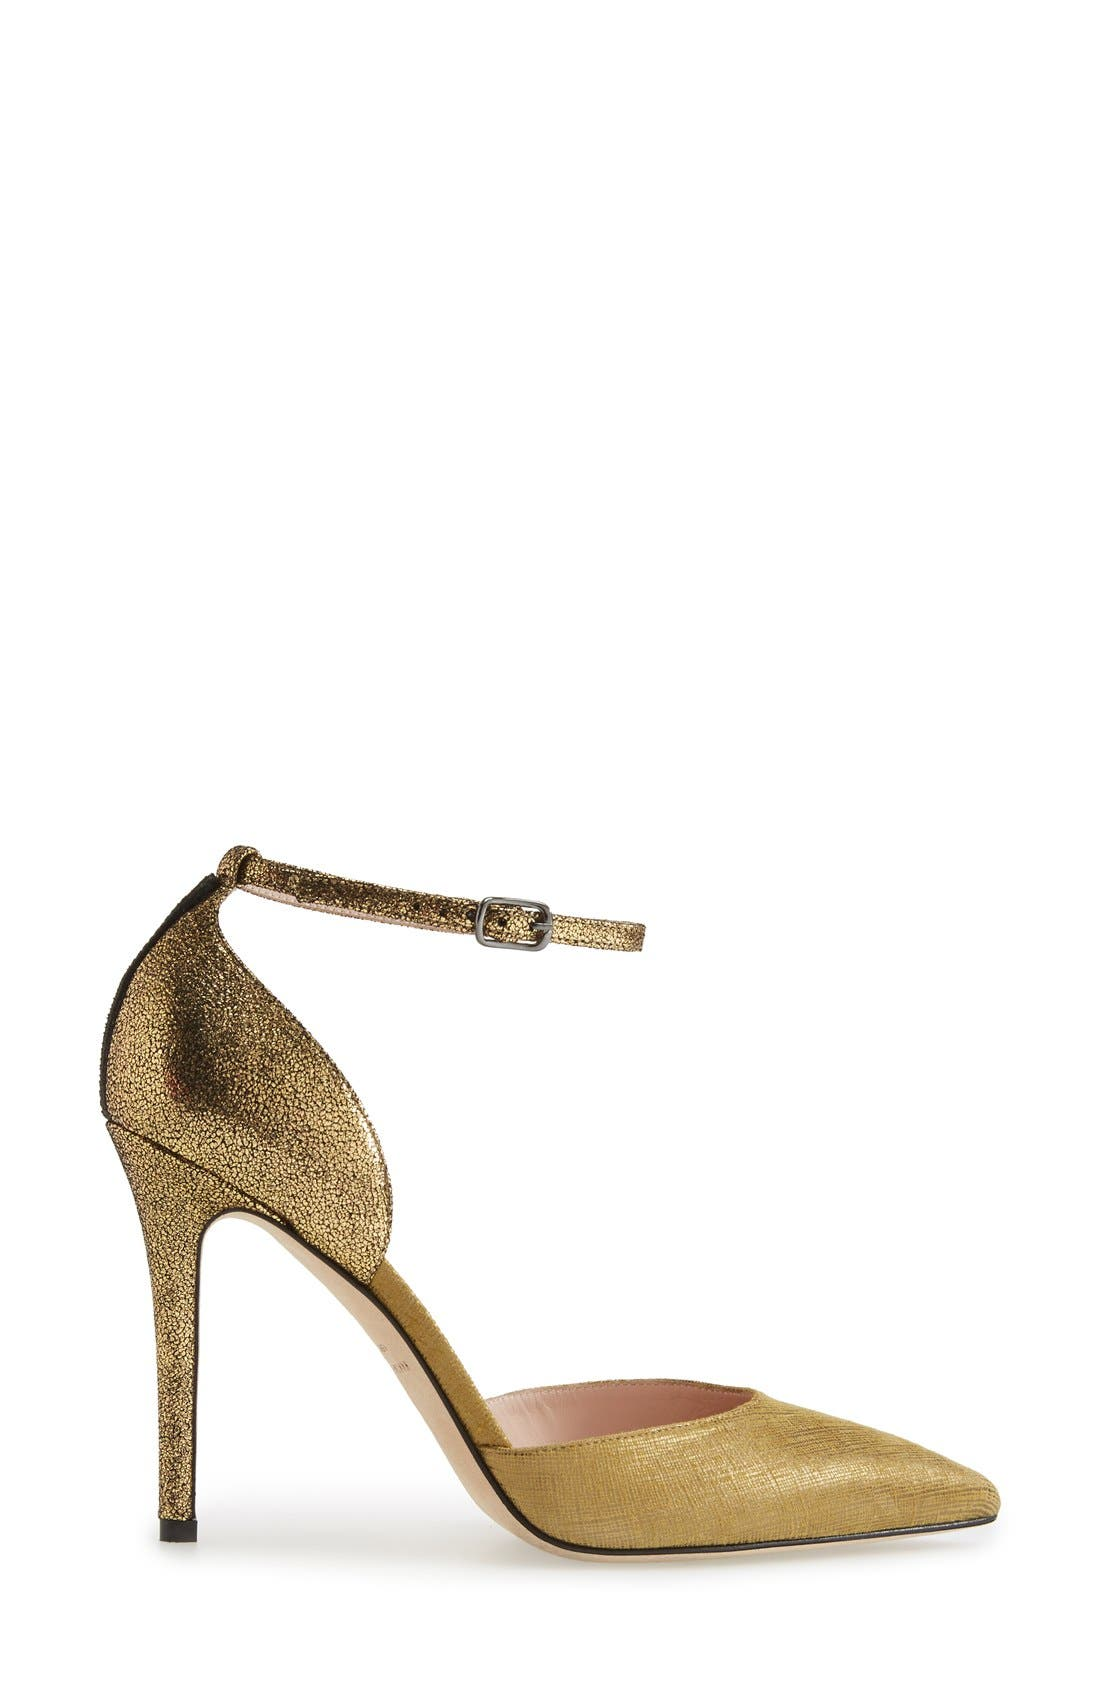 Alternate Image 4  - SJP by Sarah Jessica Parker 'Bella' Pointy Toe Ankle Strap Pump (Women) (Nordstrom Exclusive)